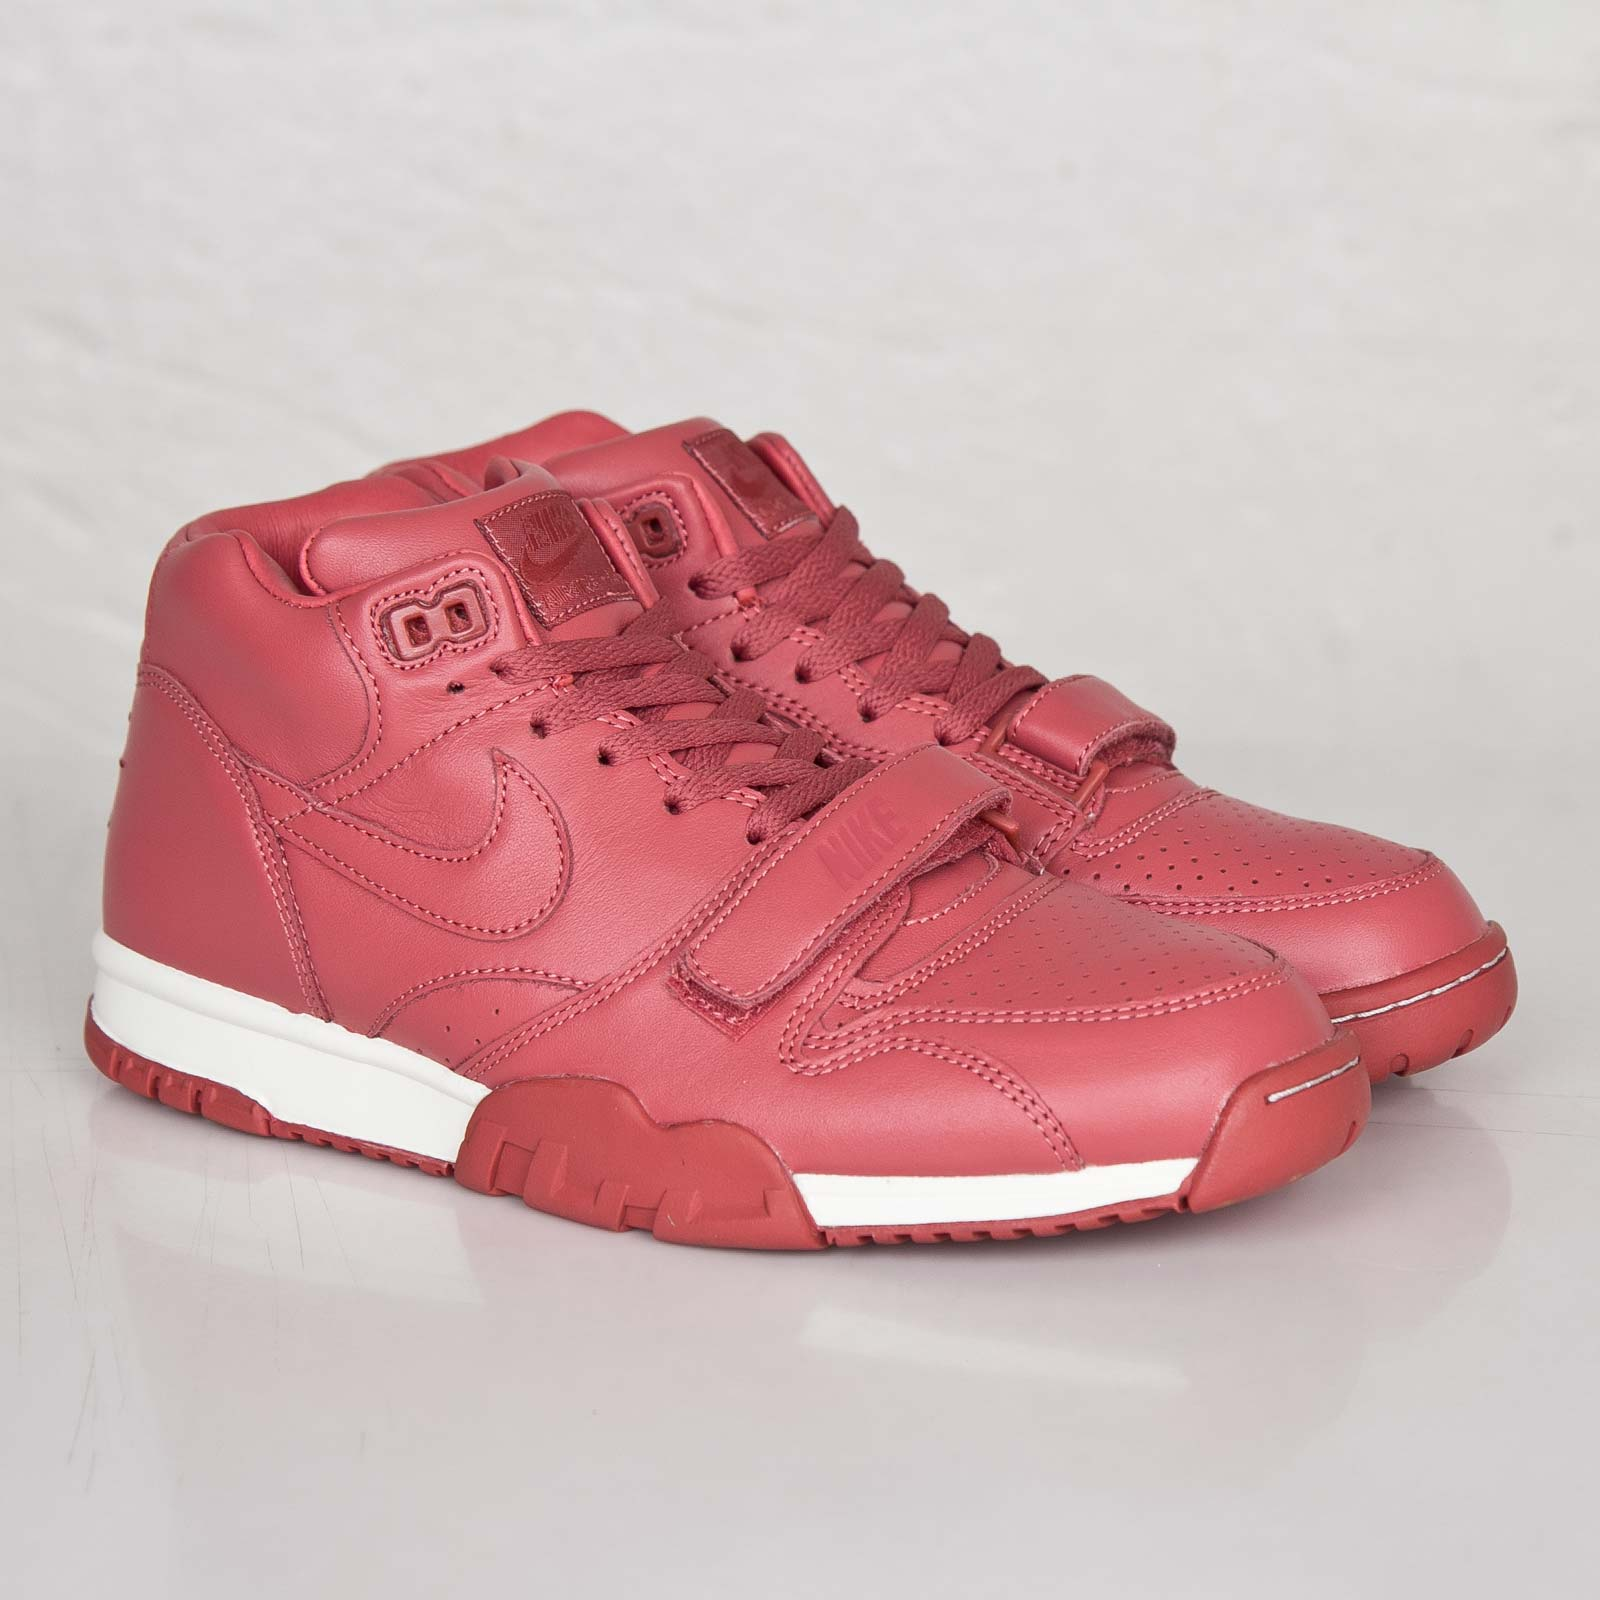 new collection discount sale catch Nike Air Trainer 1 Mid Premium QS - 607081-800 ...